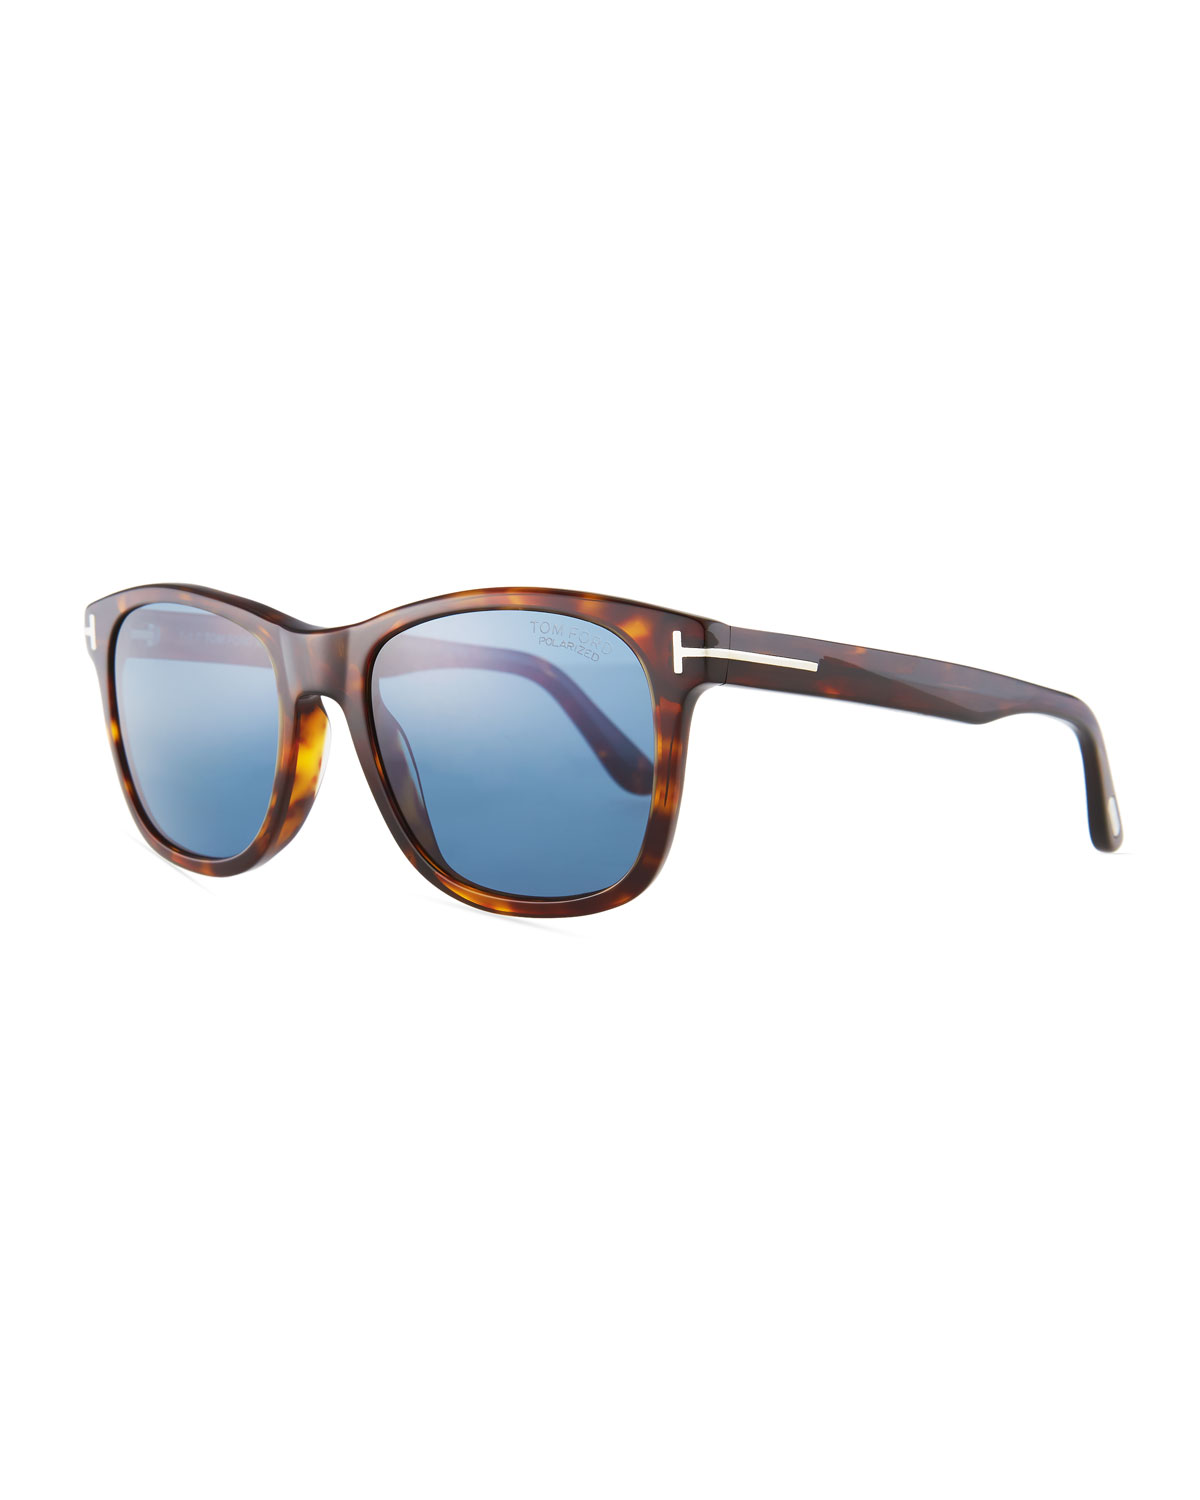 e647b6c8fa8 TOM FORD Eric Rectangular Havana Sunglasses